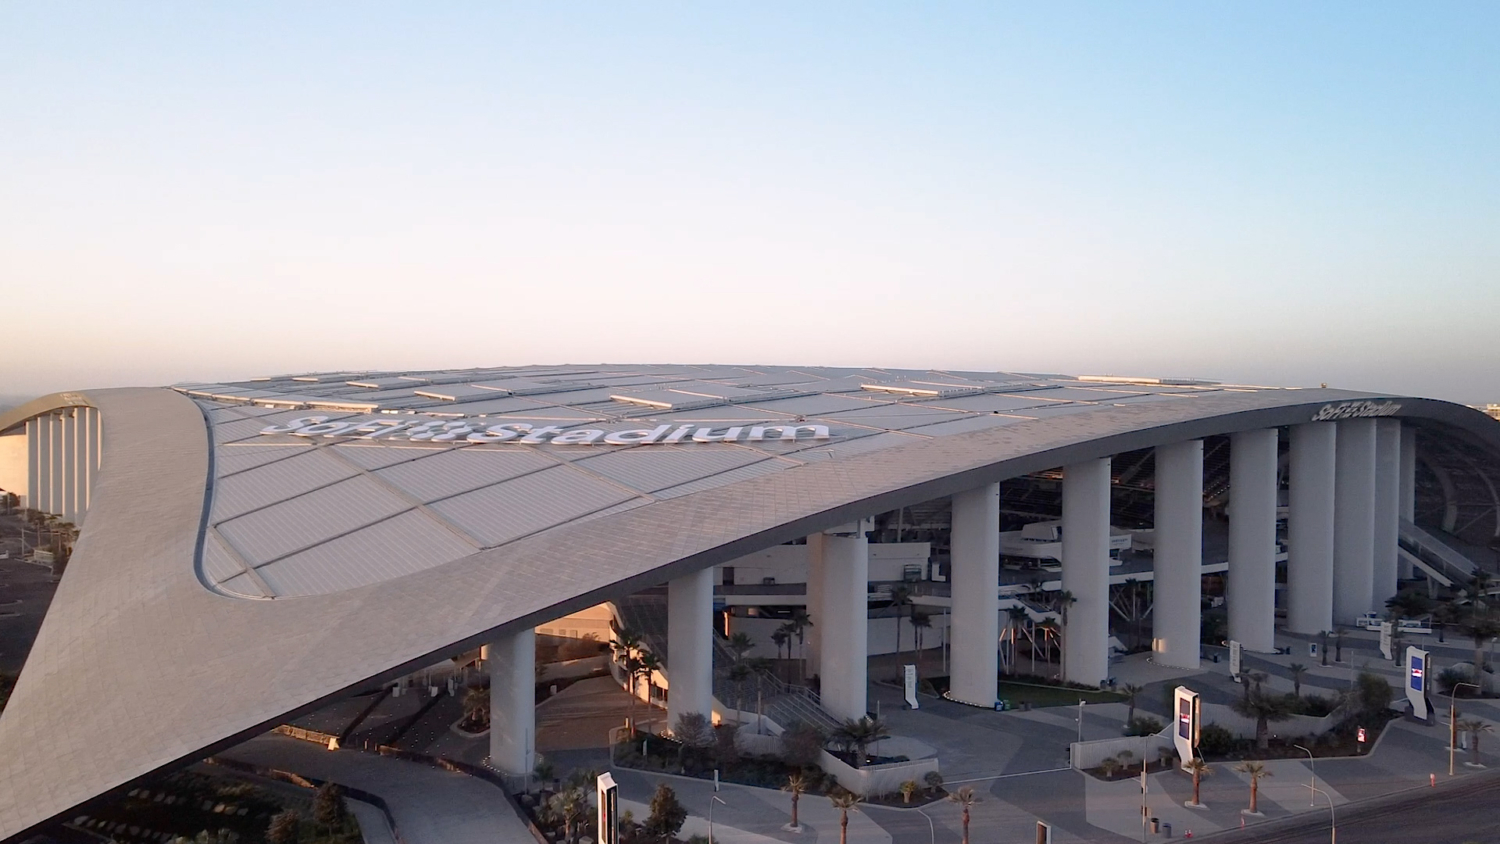 The exclusive Frost White anodized aluminum finish was developed specially to stand out against the blue sky, but also to have a matte finish so as not to create dangerous glare for air traffic flying directly overhead to and from the Los Angeles International Airport.